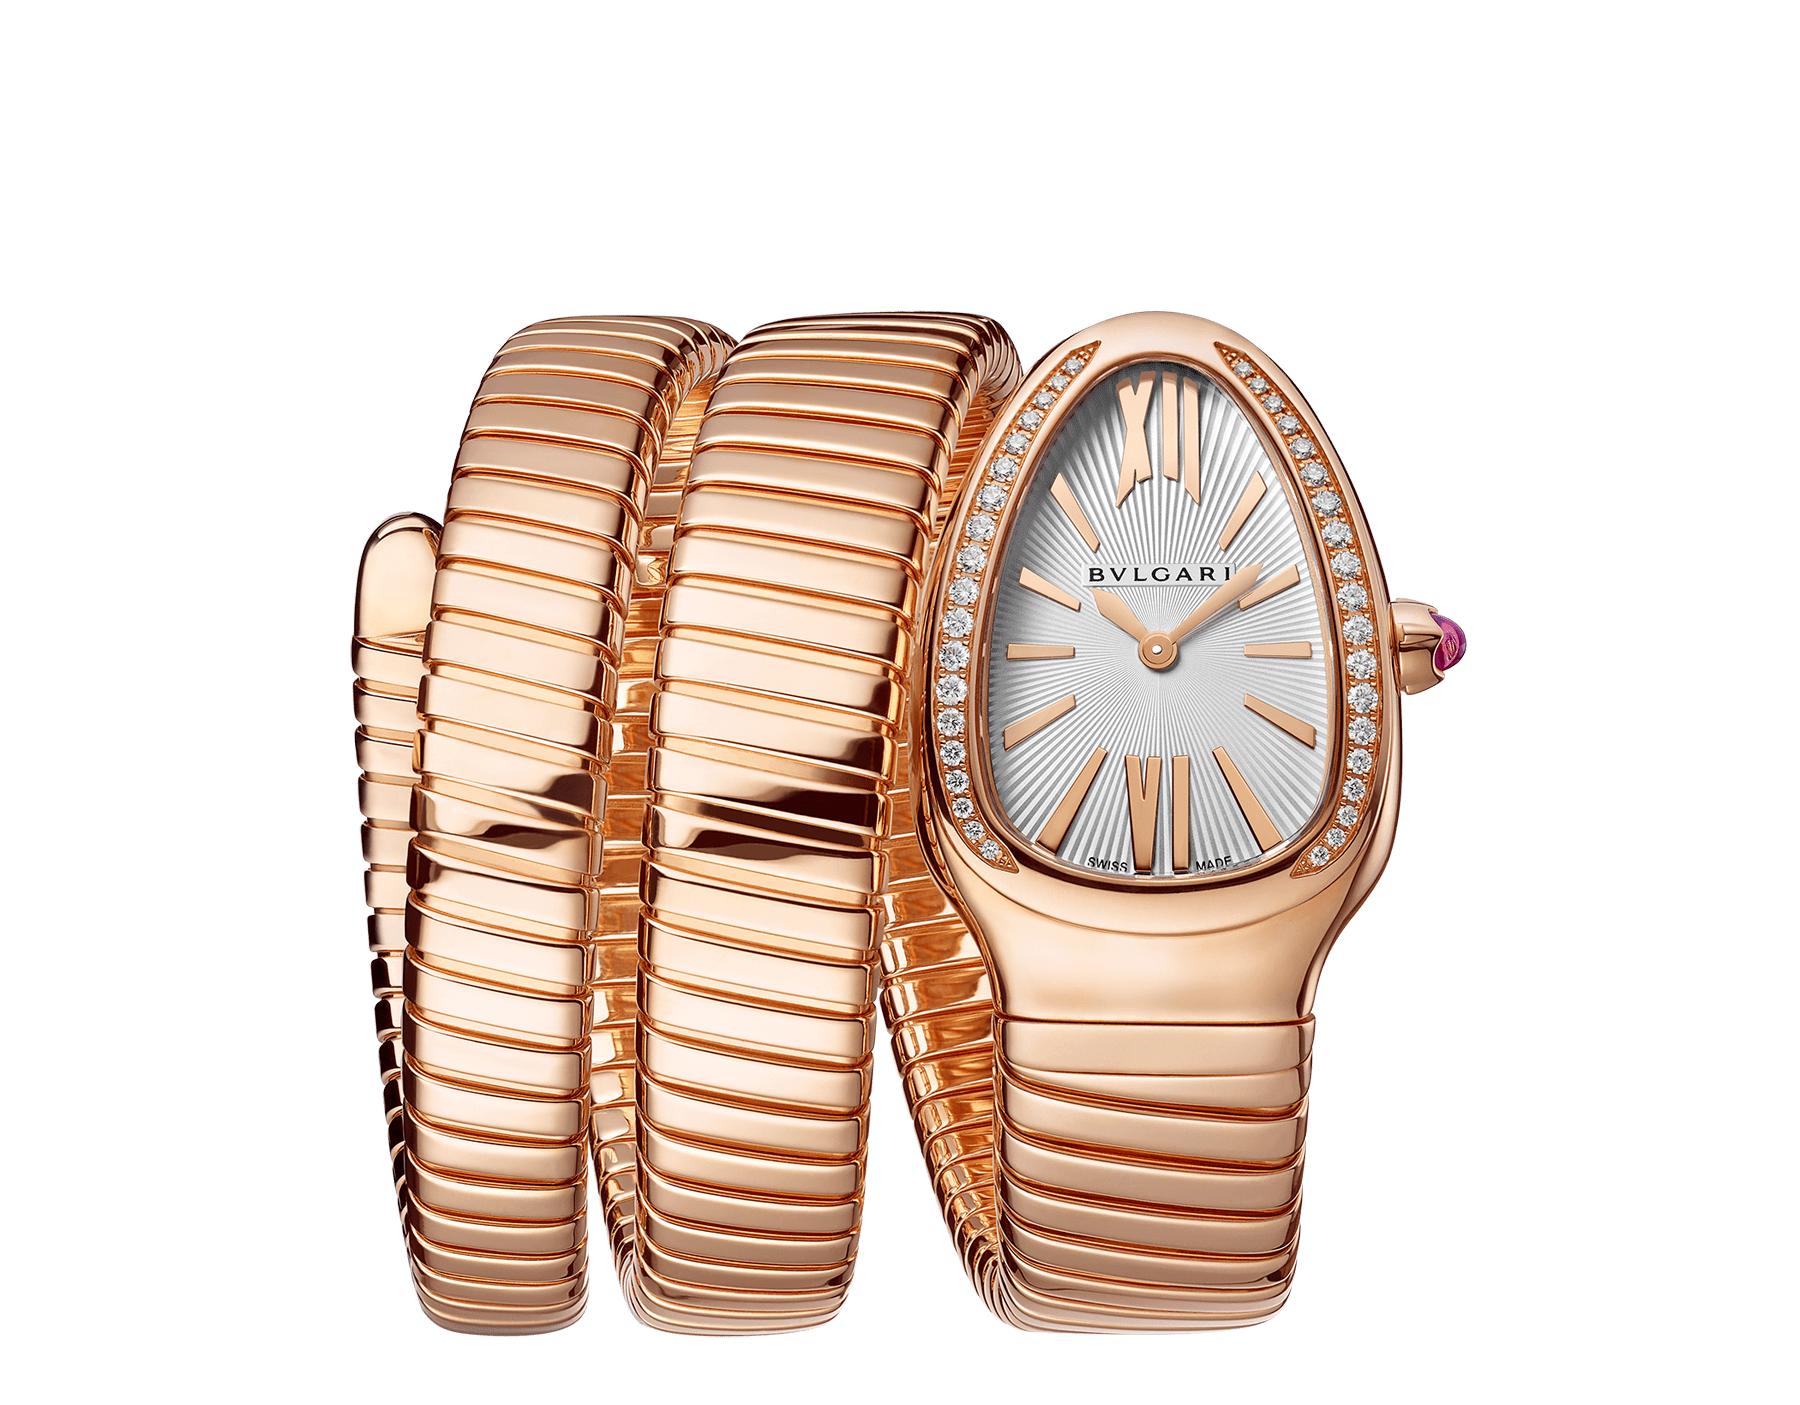 Serpenti Tubogas double spiral watch with 18 kt rose gold case set with brilliant-cut diamonds, silver opaline dial and 18 kt rose gold bracelet 103002 image 1